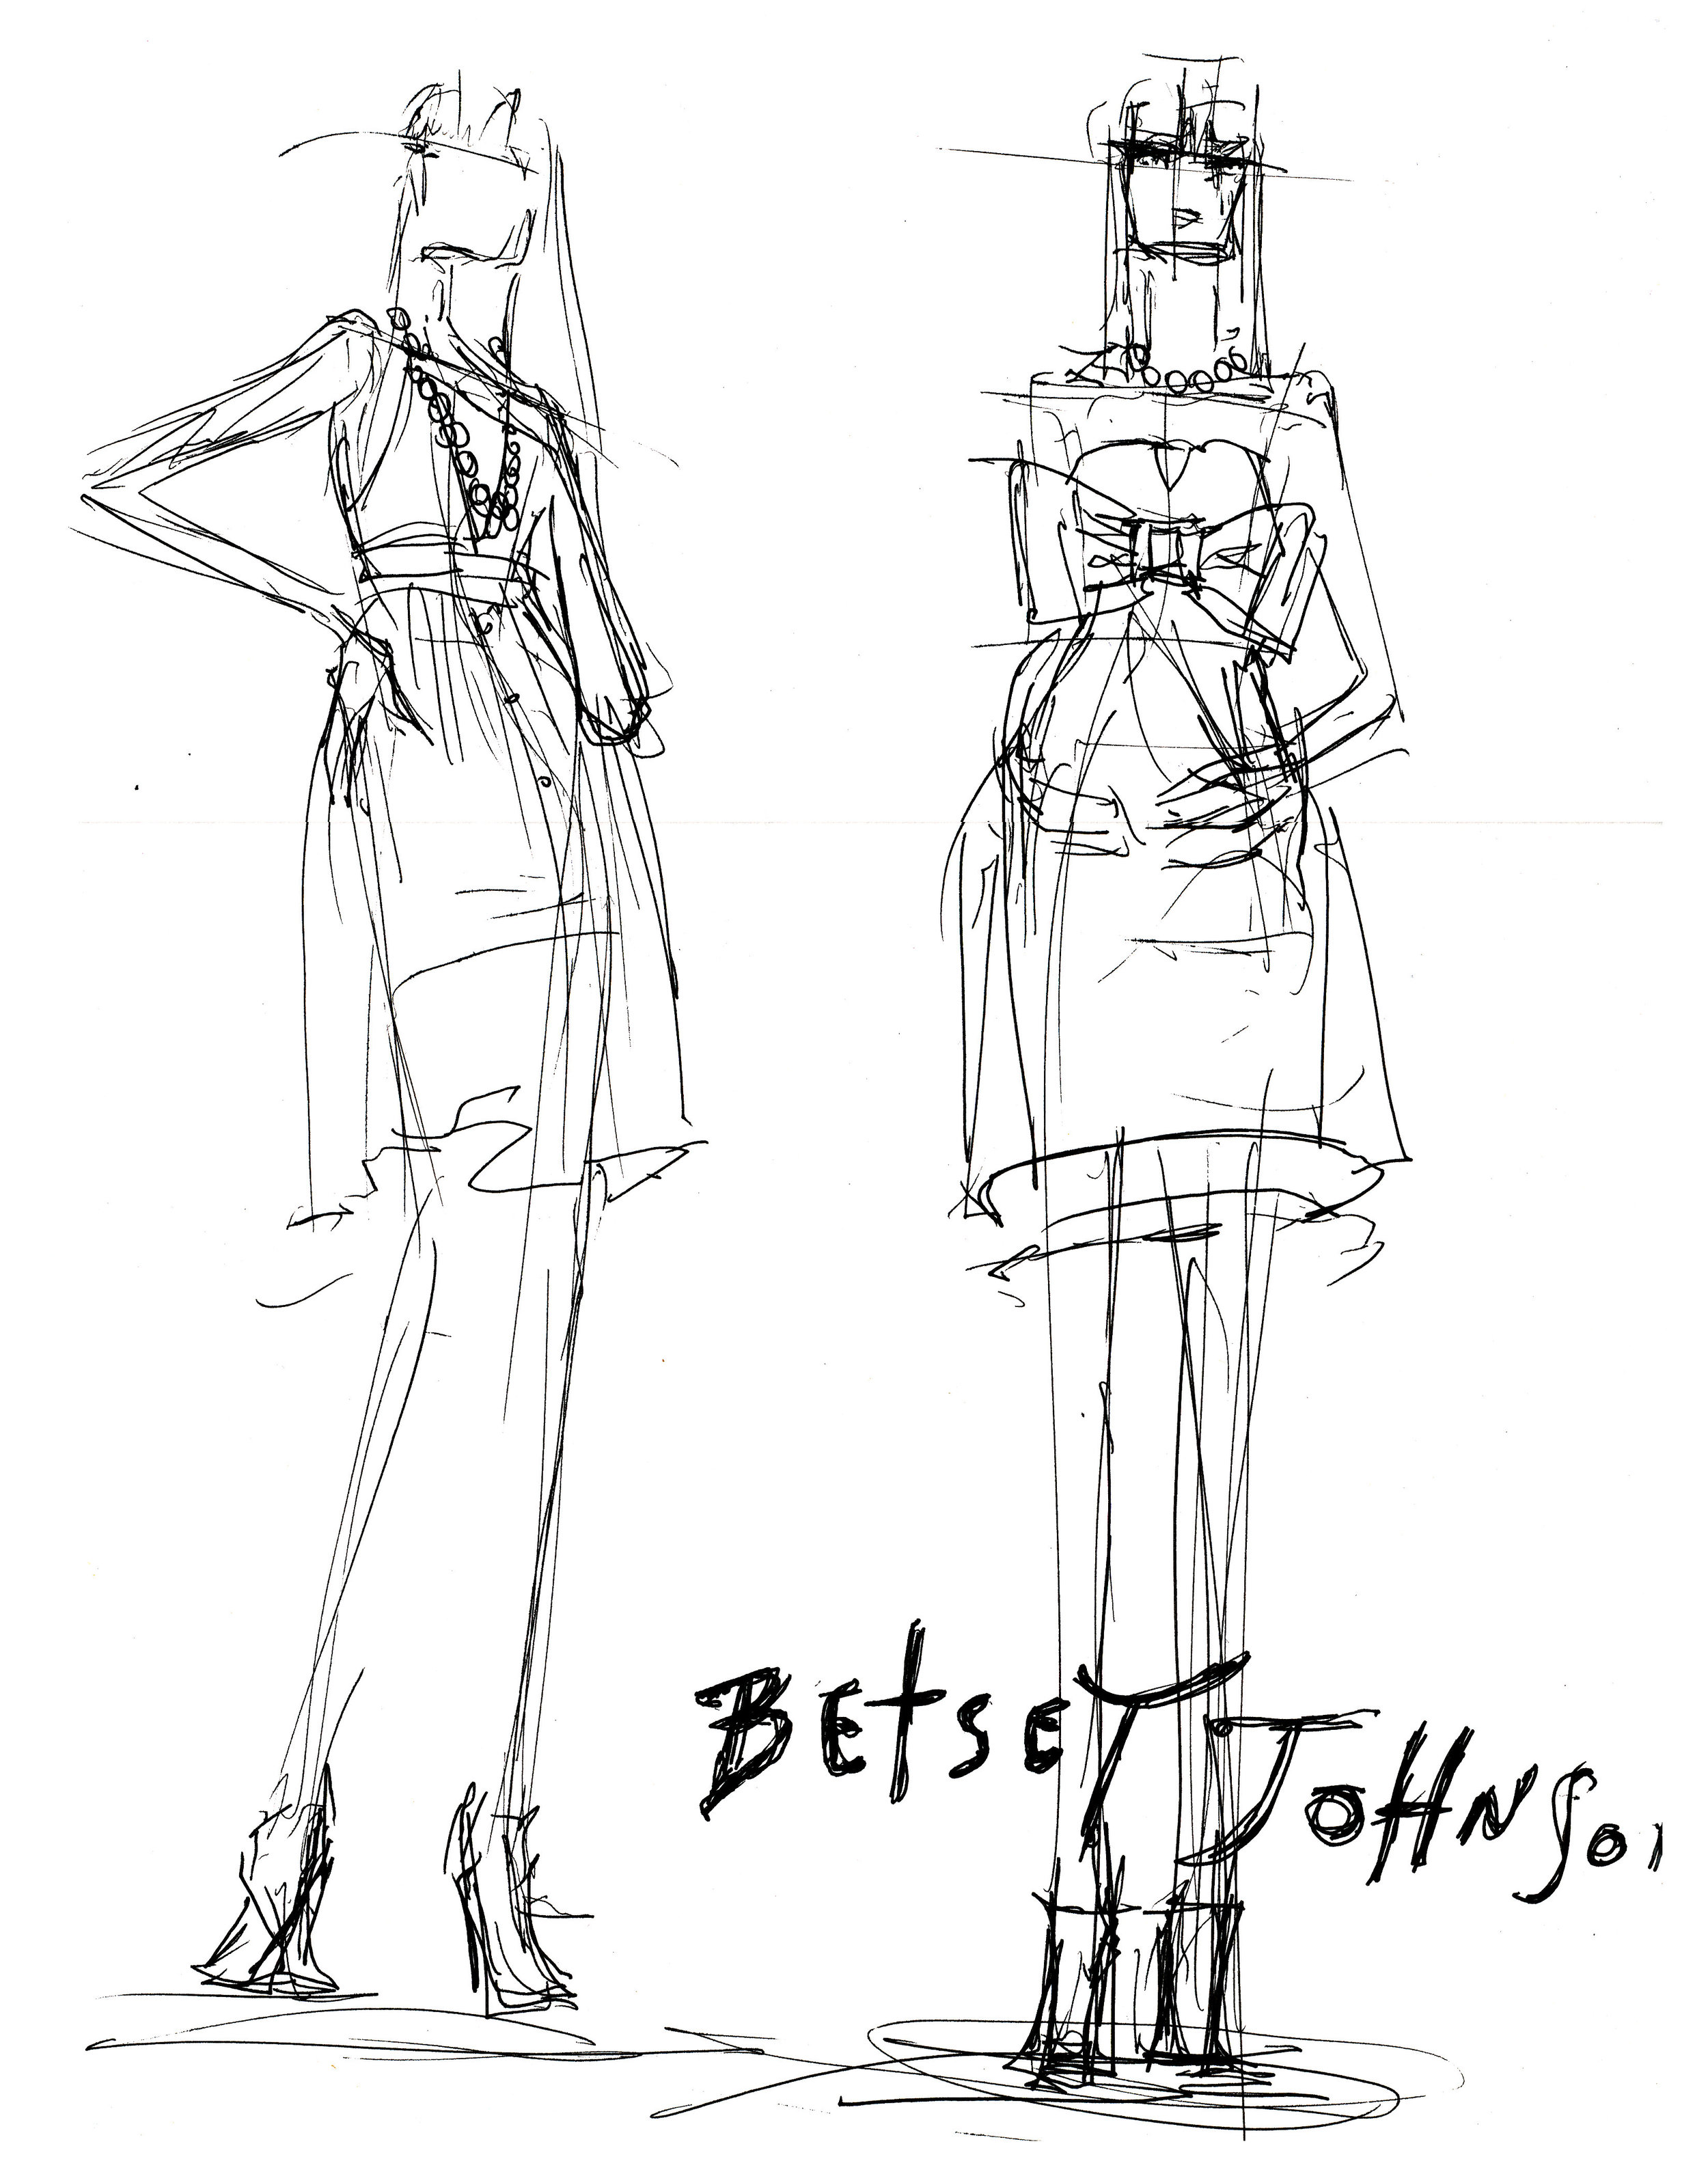 Betsey Johnson sketches